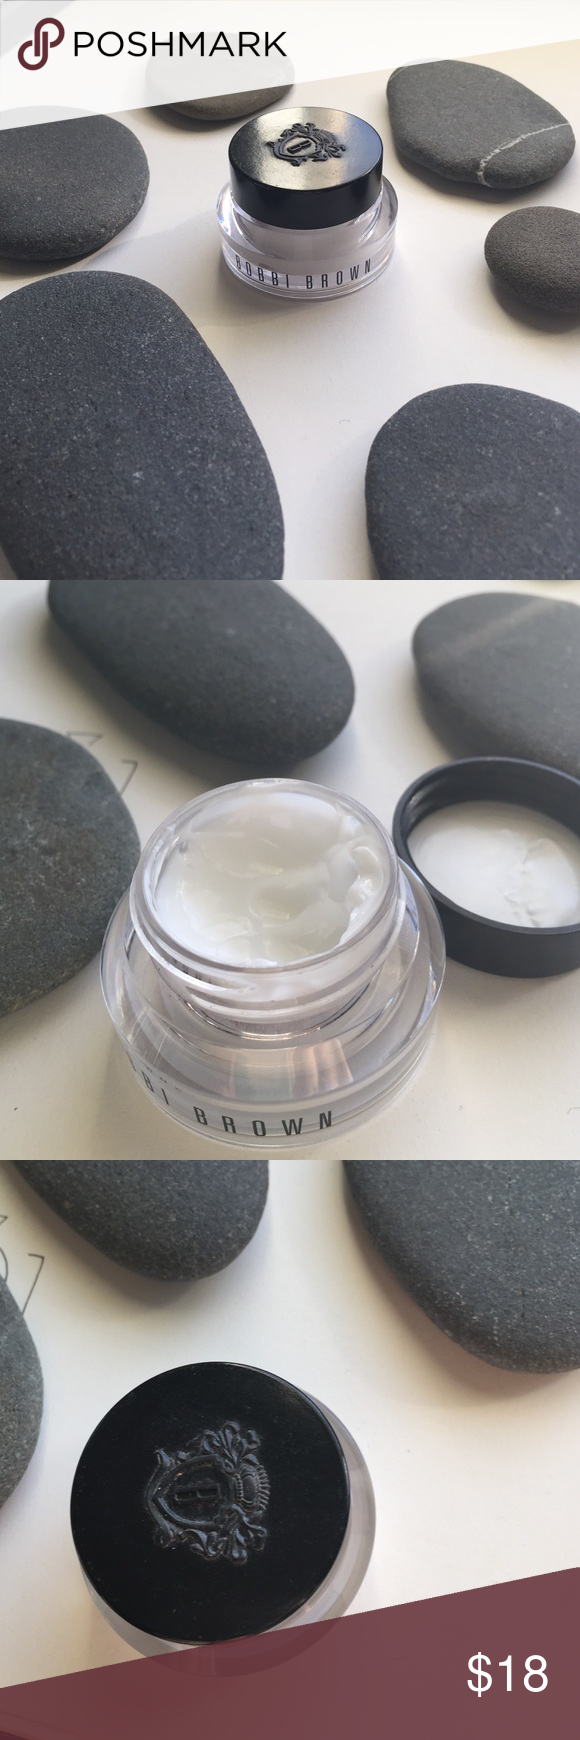 Bobbi brown hydrating eye cream About 1/4 used. Lots left! Makeup